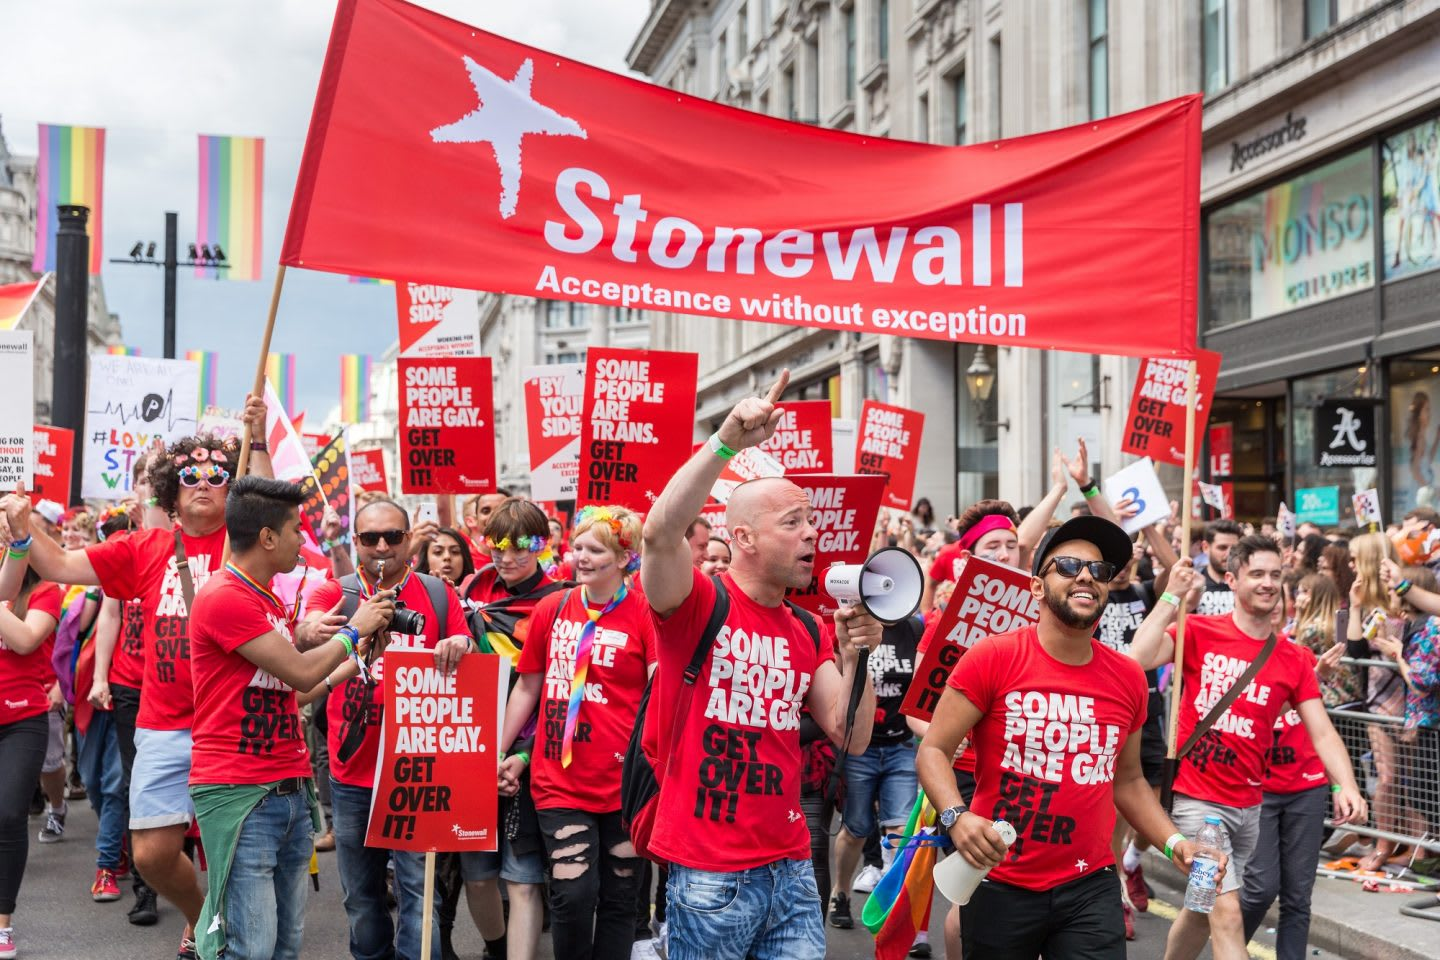 Men and women wearing red t-shirts during a march at London Pride Parade in 2016, Stonewall, LGBTQ, inclusion, diversity